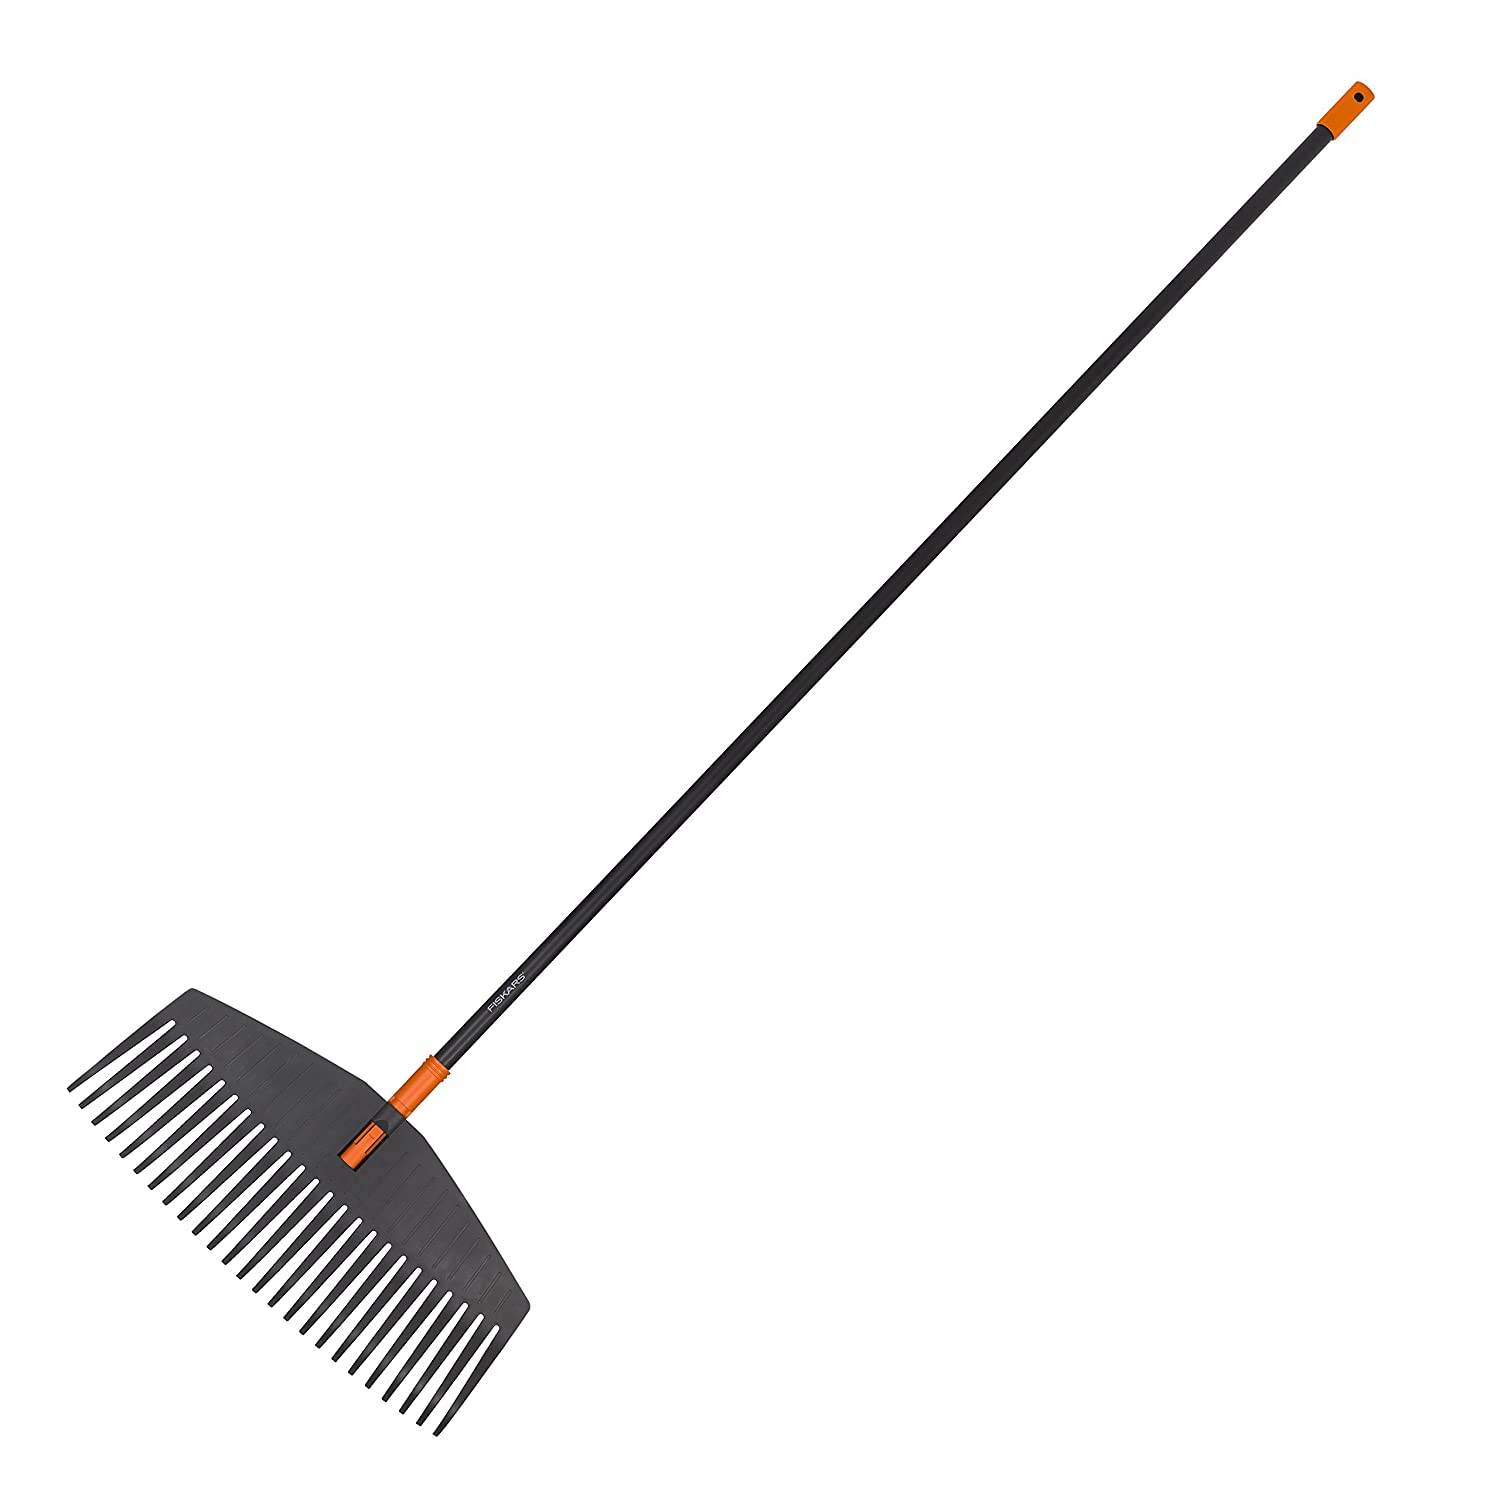 Fiskars Solid Leaf Rake M, 25 tines, Length: 41.5 cm, Plastic prongs/Aluminium handle, Black/Orange, Size: M, 1003464 S8135016